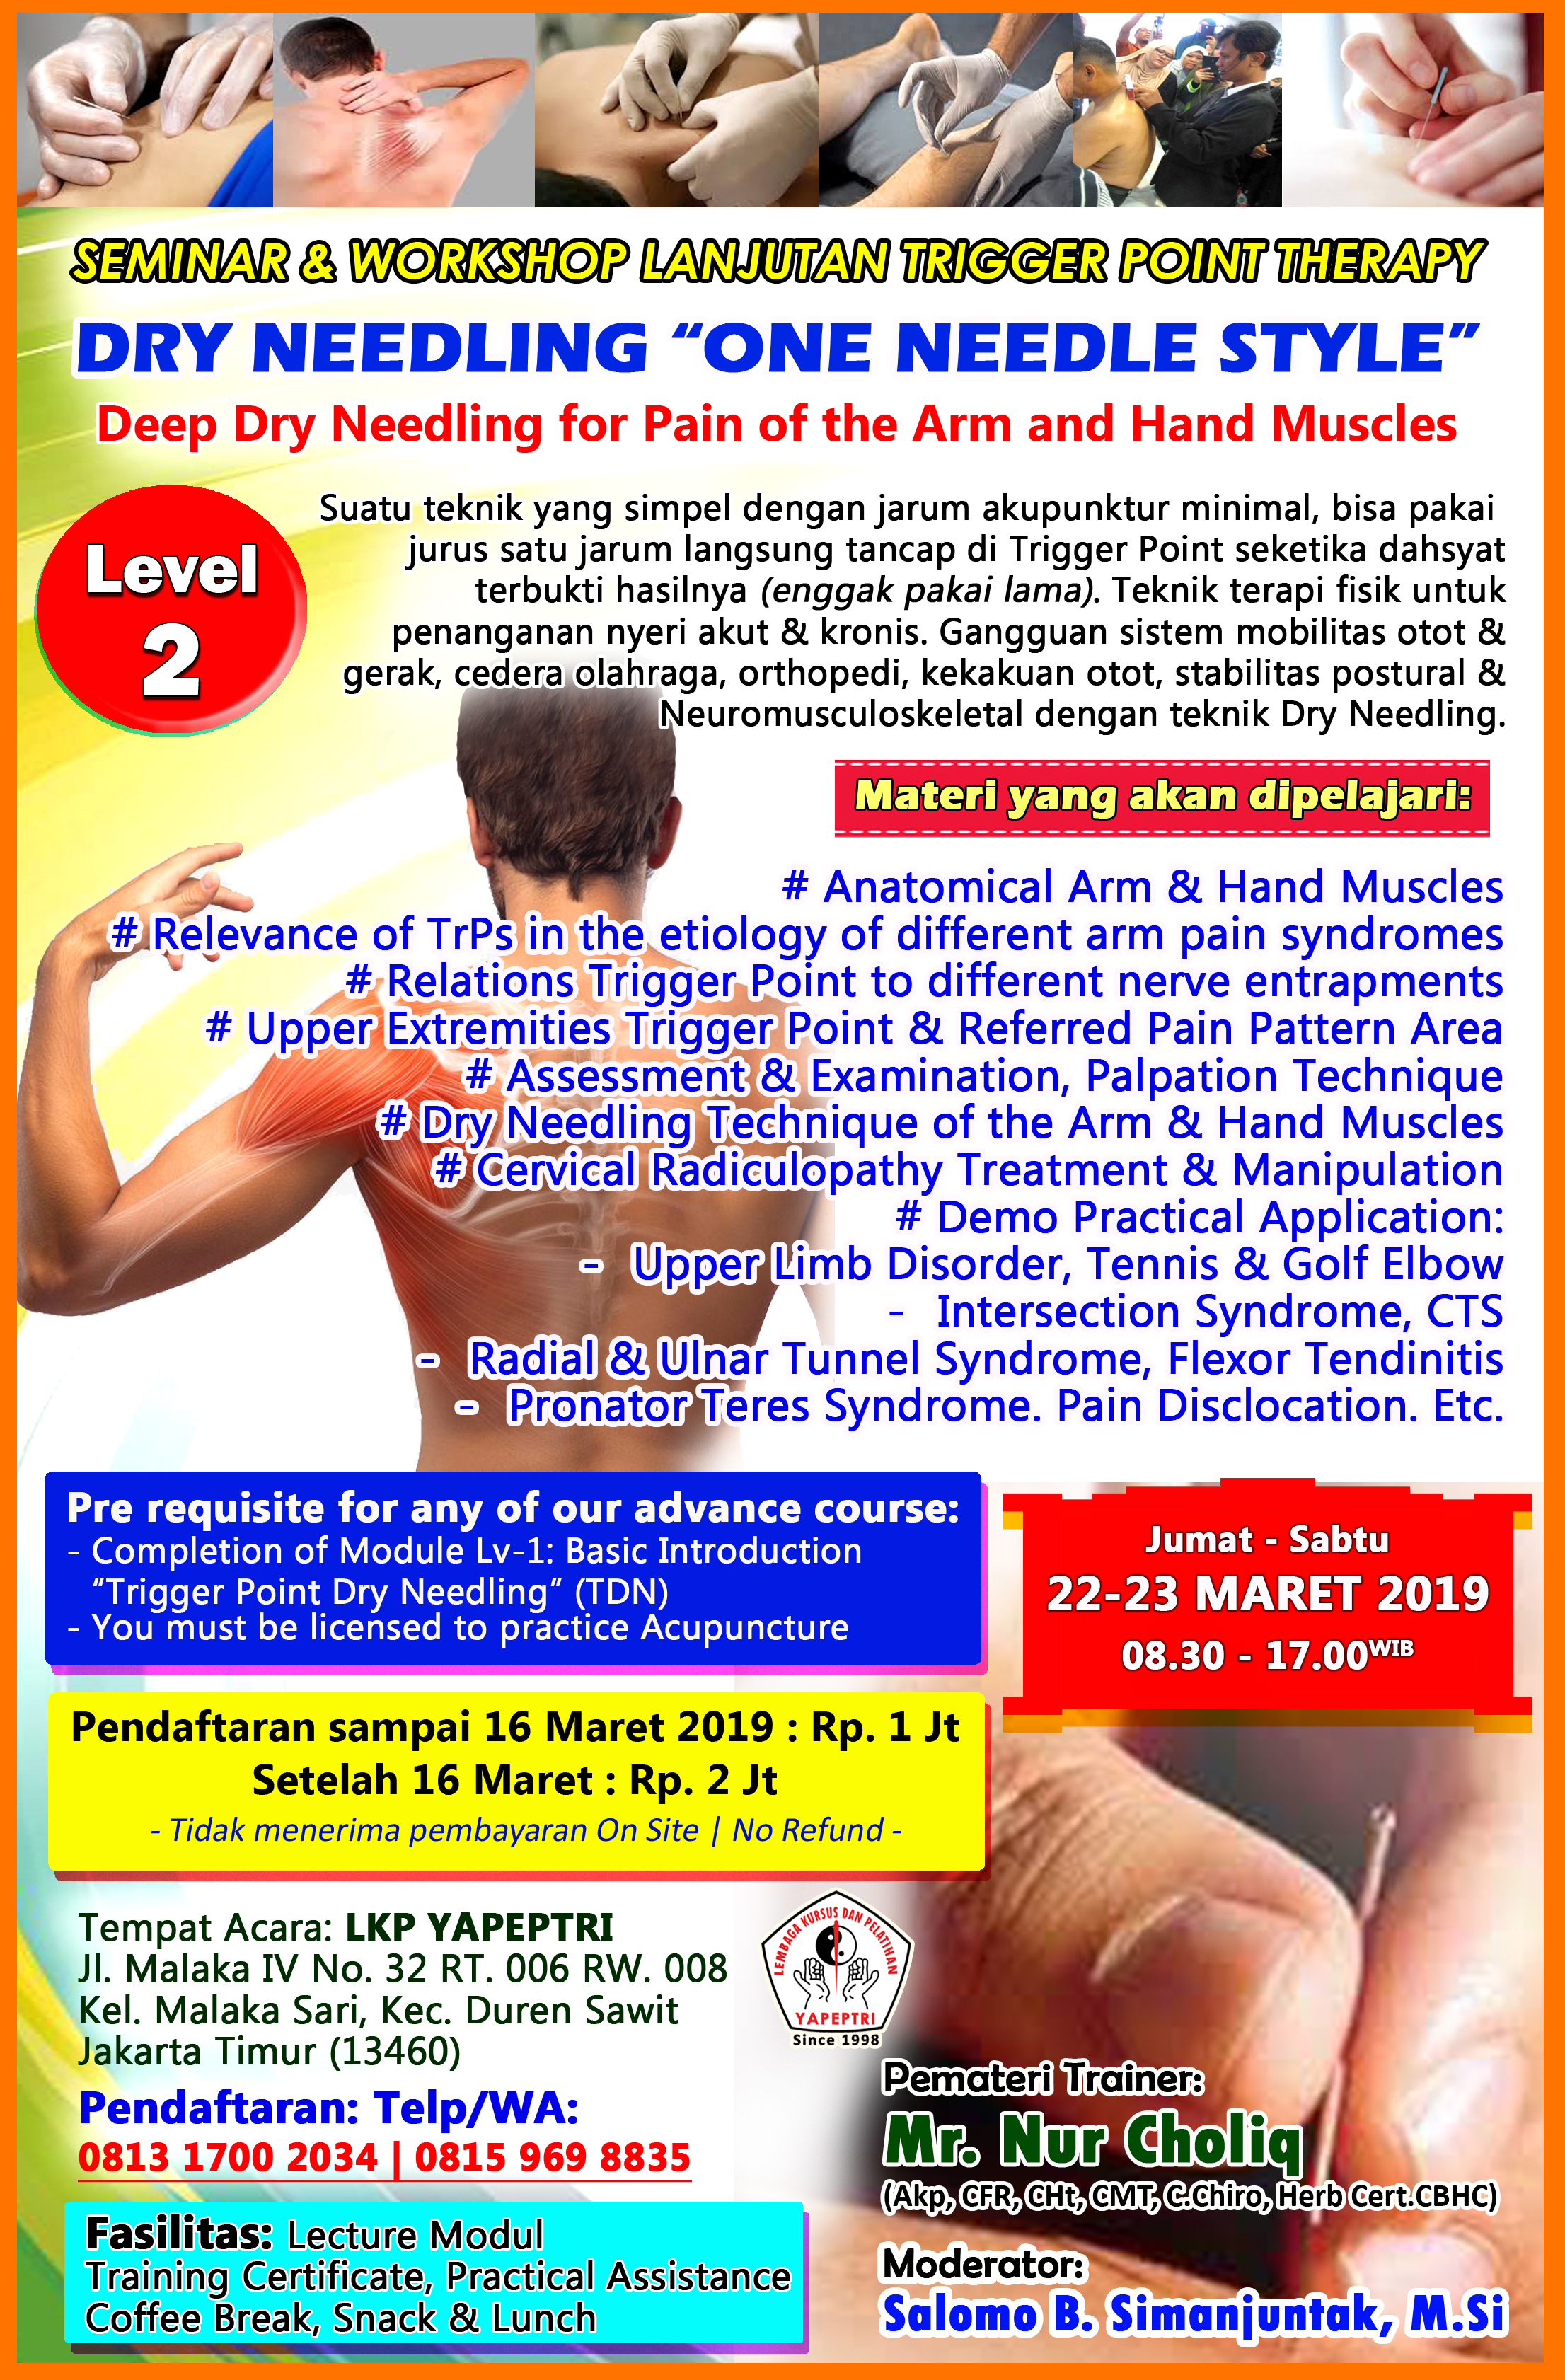 "SEMINAR & WORKSHOP LANJUTAN TRIGGER POINT THERAPY DRY NEEDLING ""ONE NEEDLE STYLE"" Level 2"